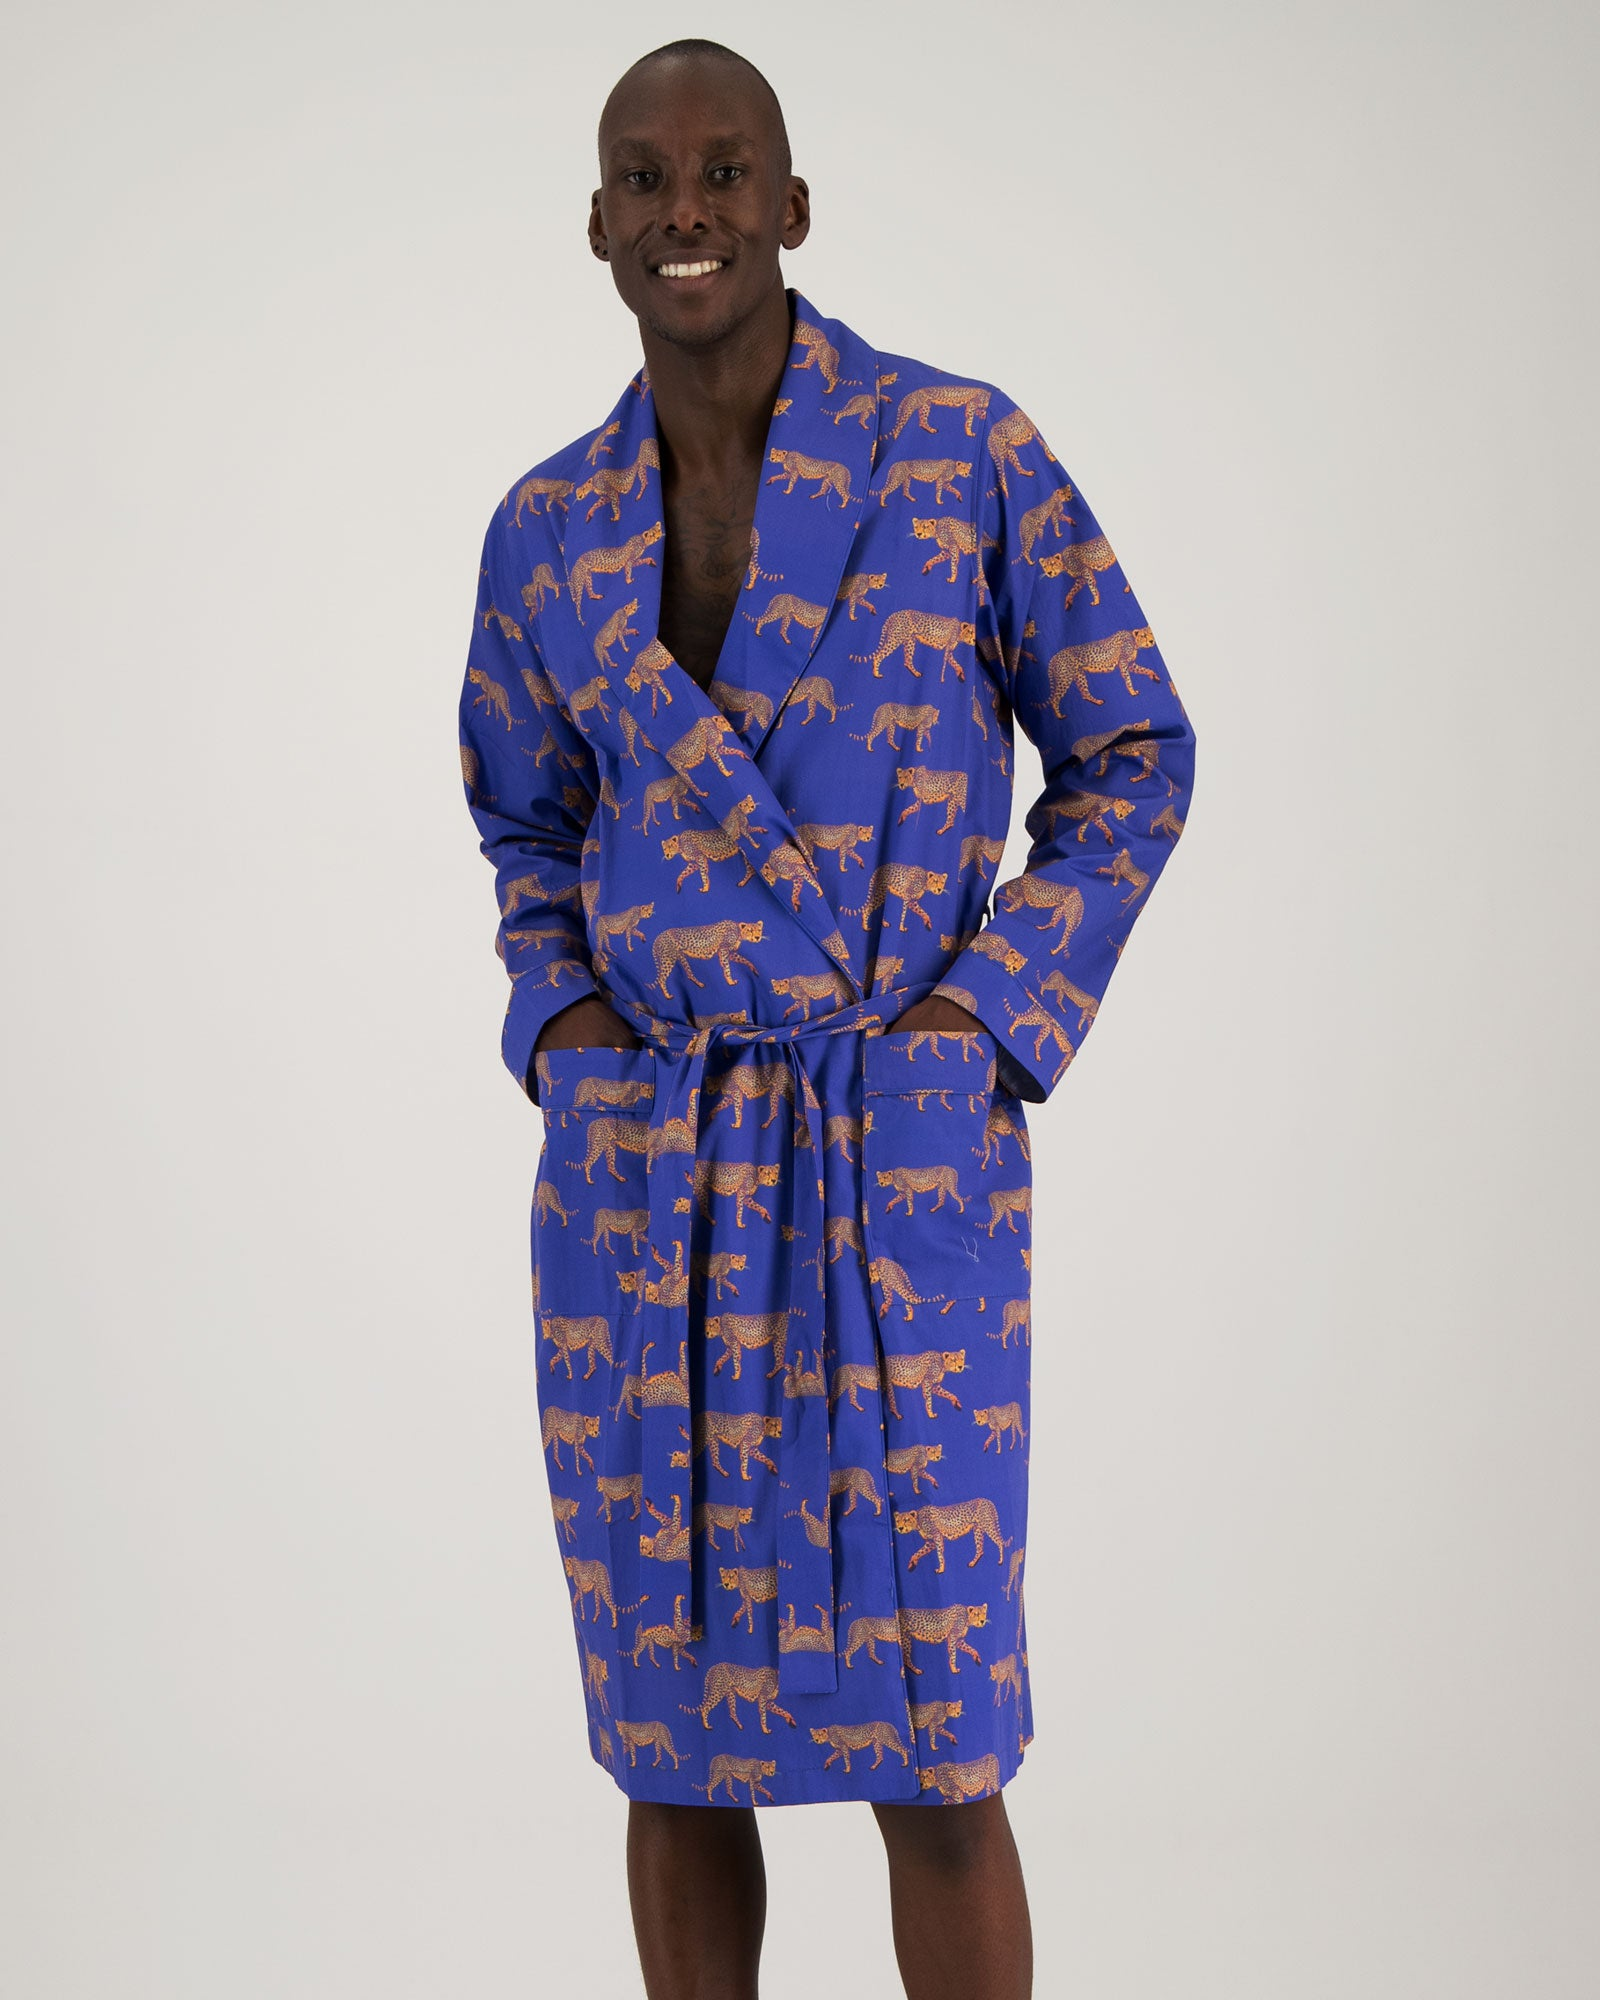 Mens Gown Blue Cheetahs Front - Woodstock Laundry